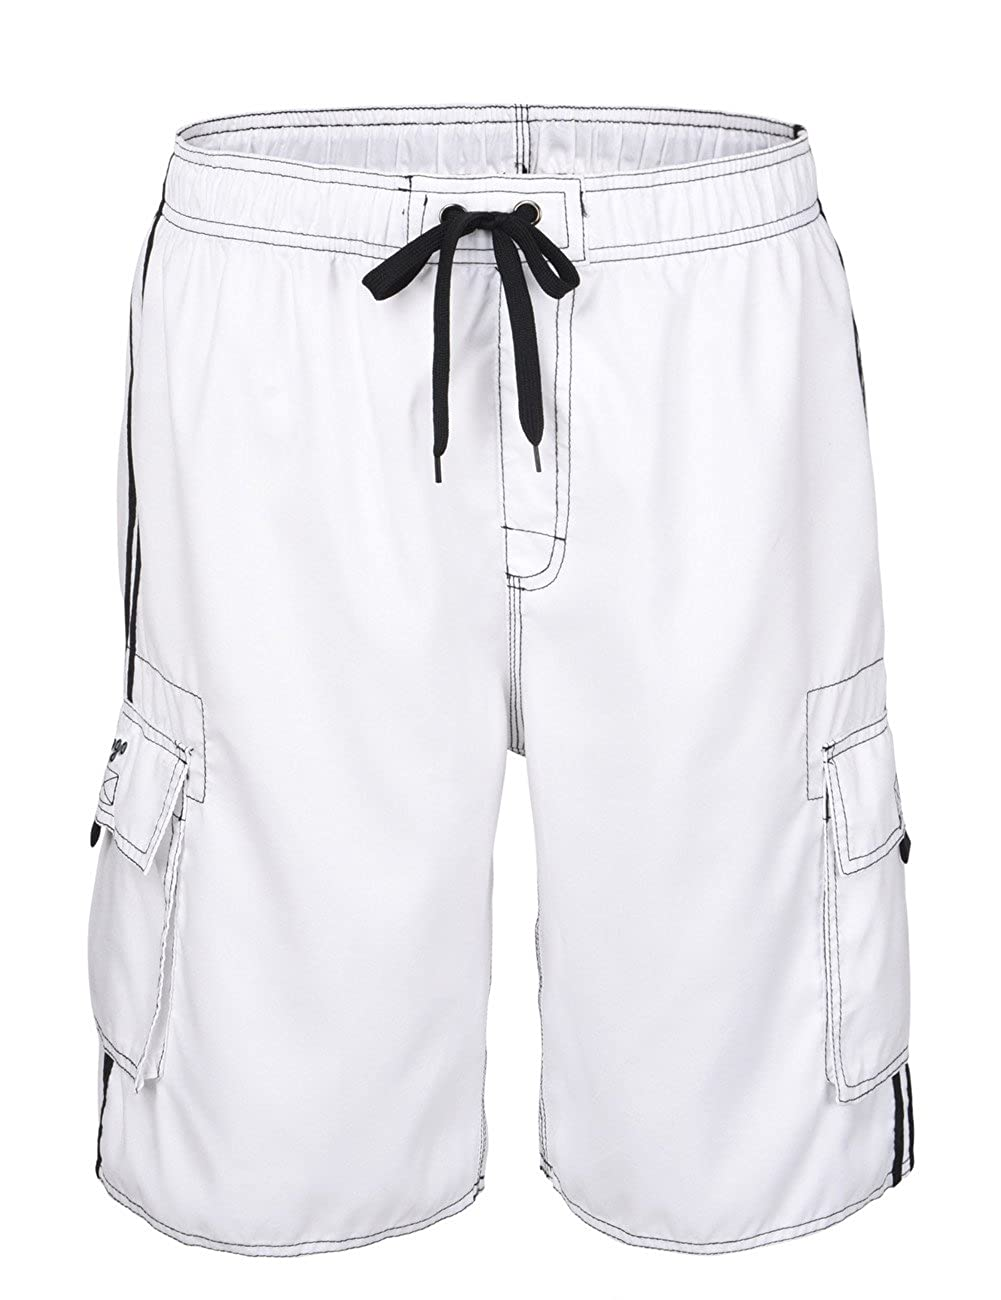 Hopgo Men's Quick Dry Beach Short Solid Color Boardshorts Swim Trunks with Mesh Lining HP-MK020900